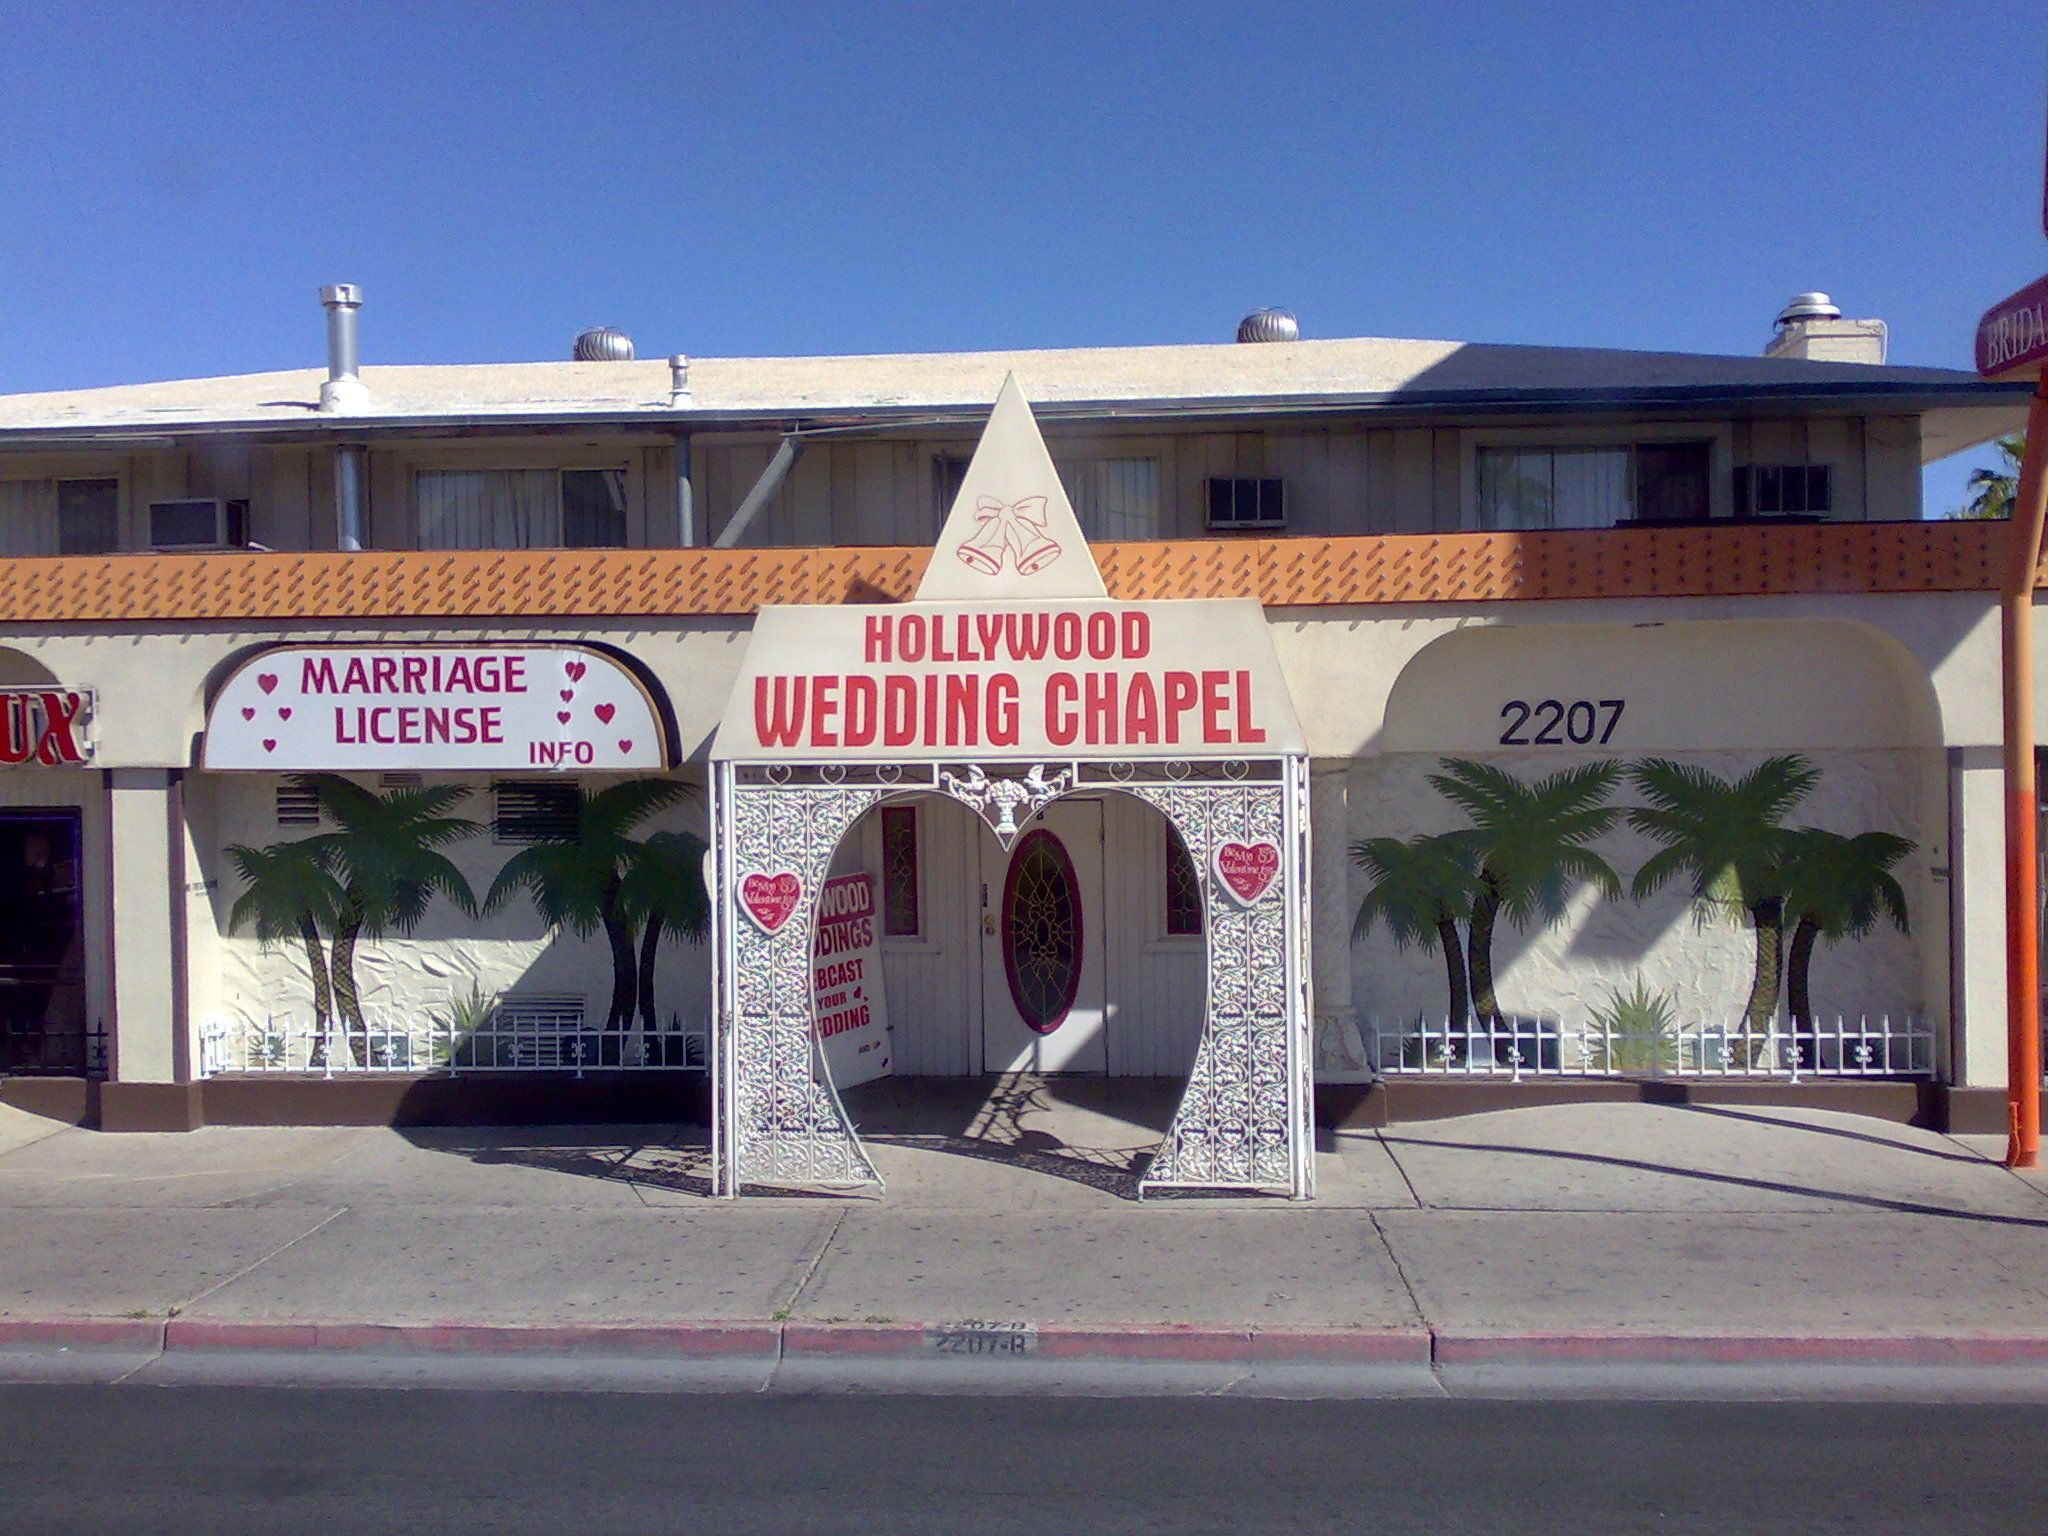 Drive Thru Wedding Chapel If Elvis Is Involved I Think We Should Give This A Go For Our Silver Anniversary